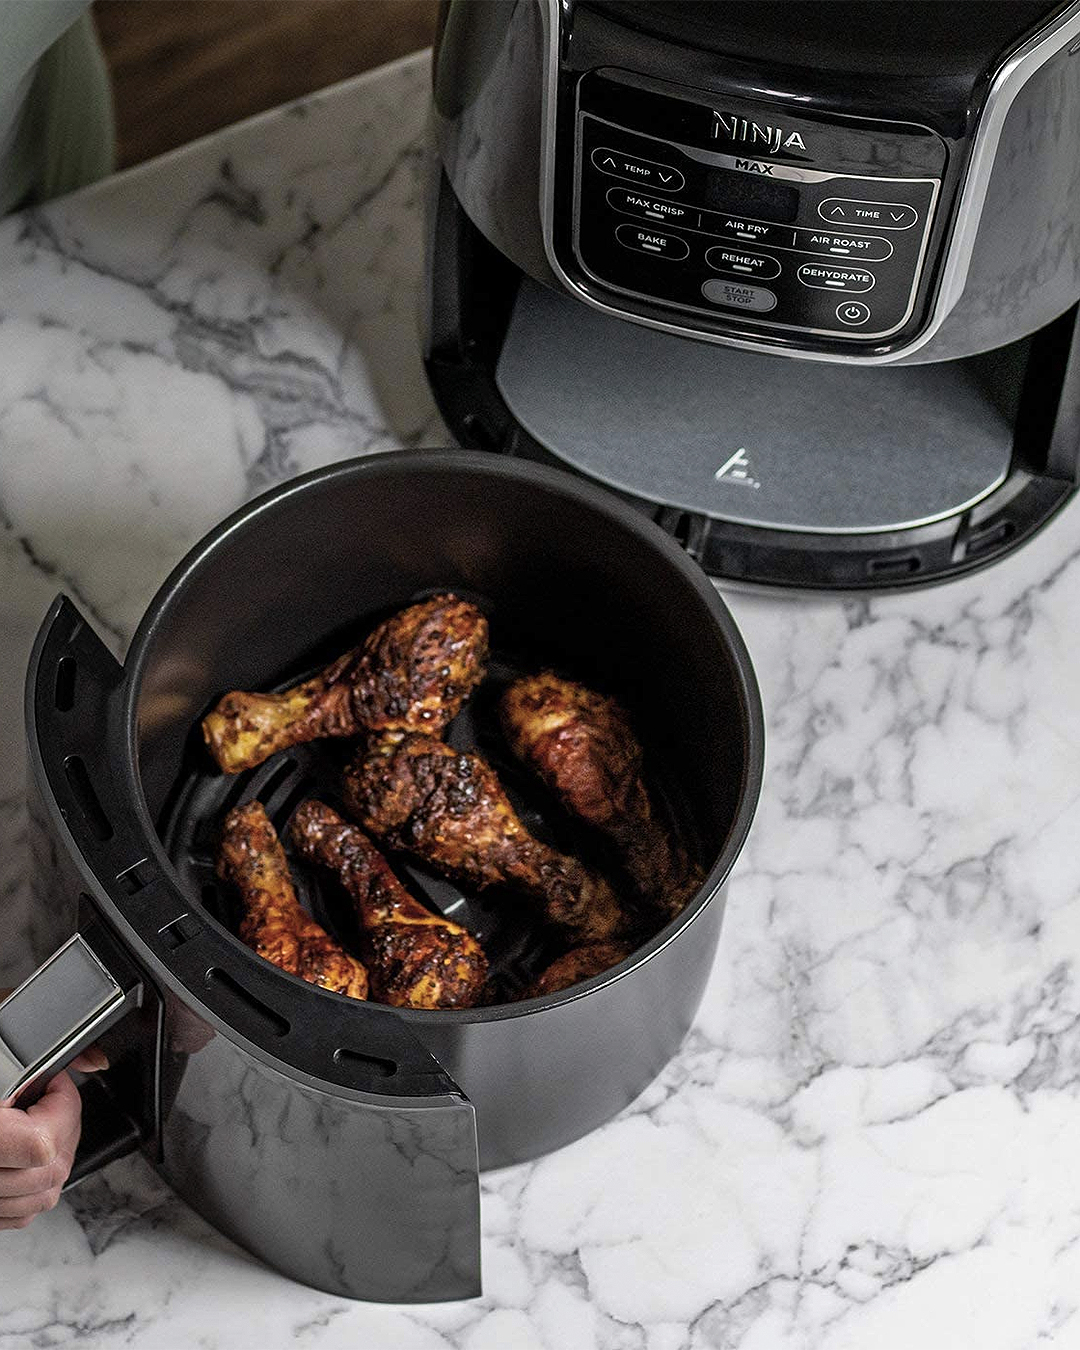 The Ninja Air Fryer Max with a bucket of fried chicken on display.